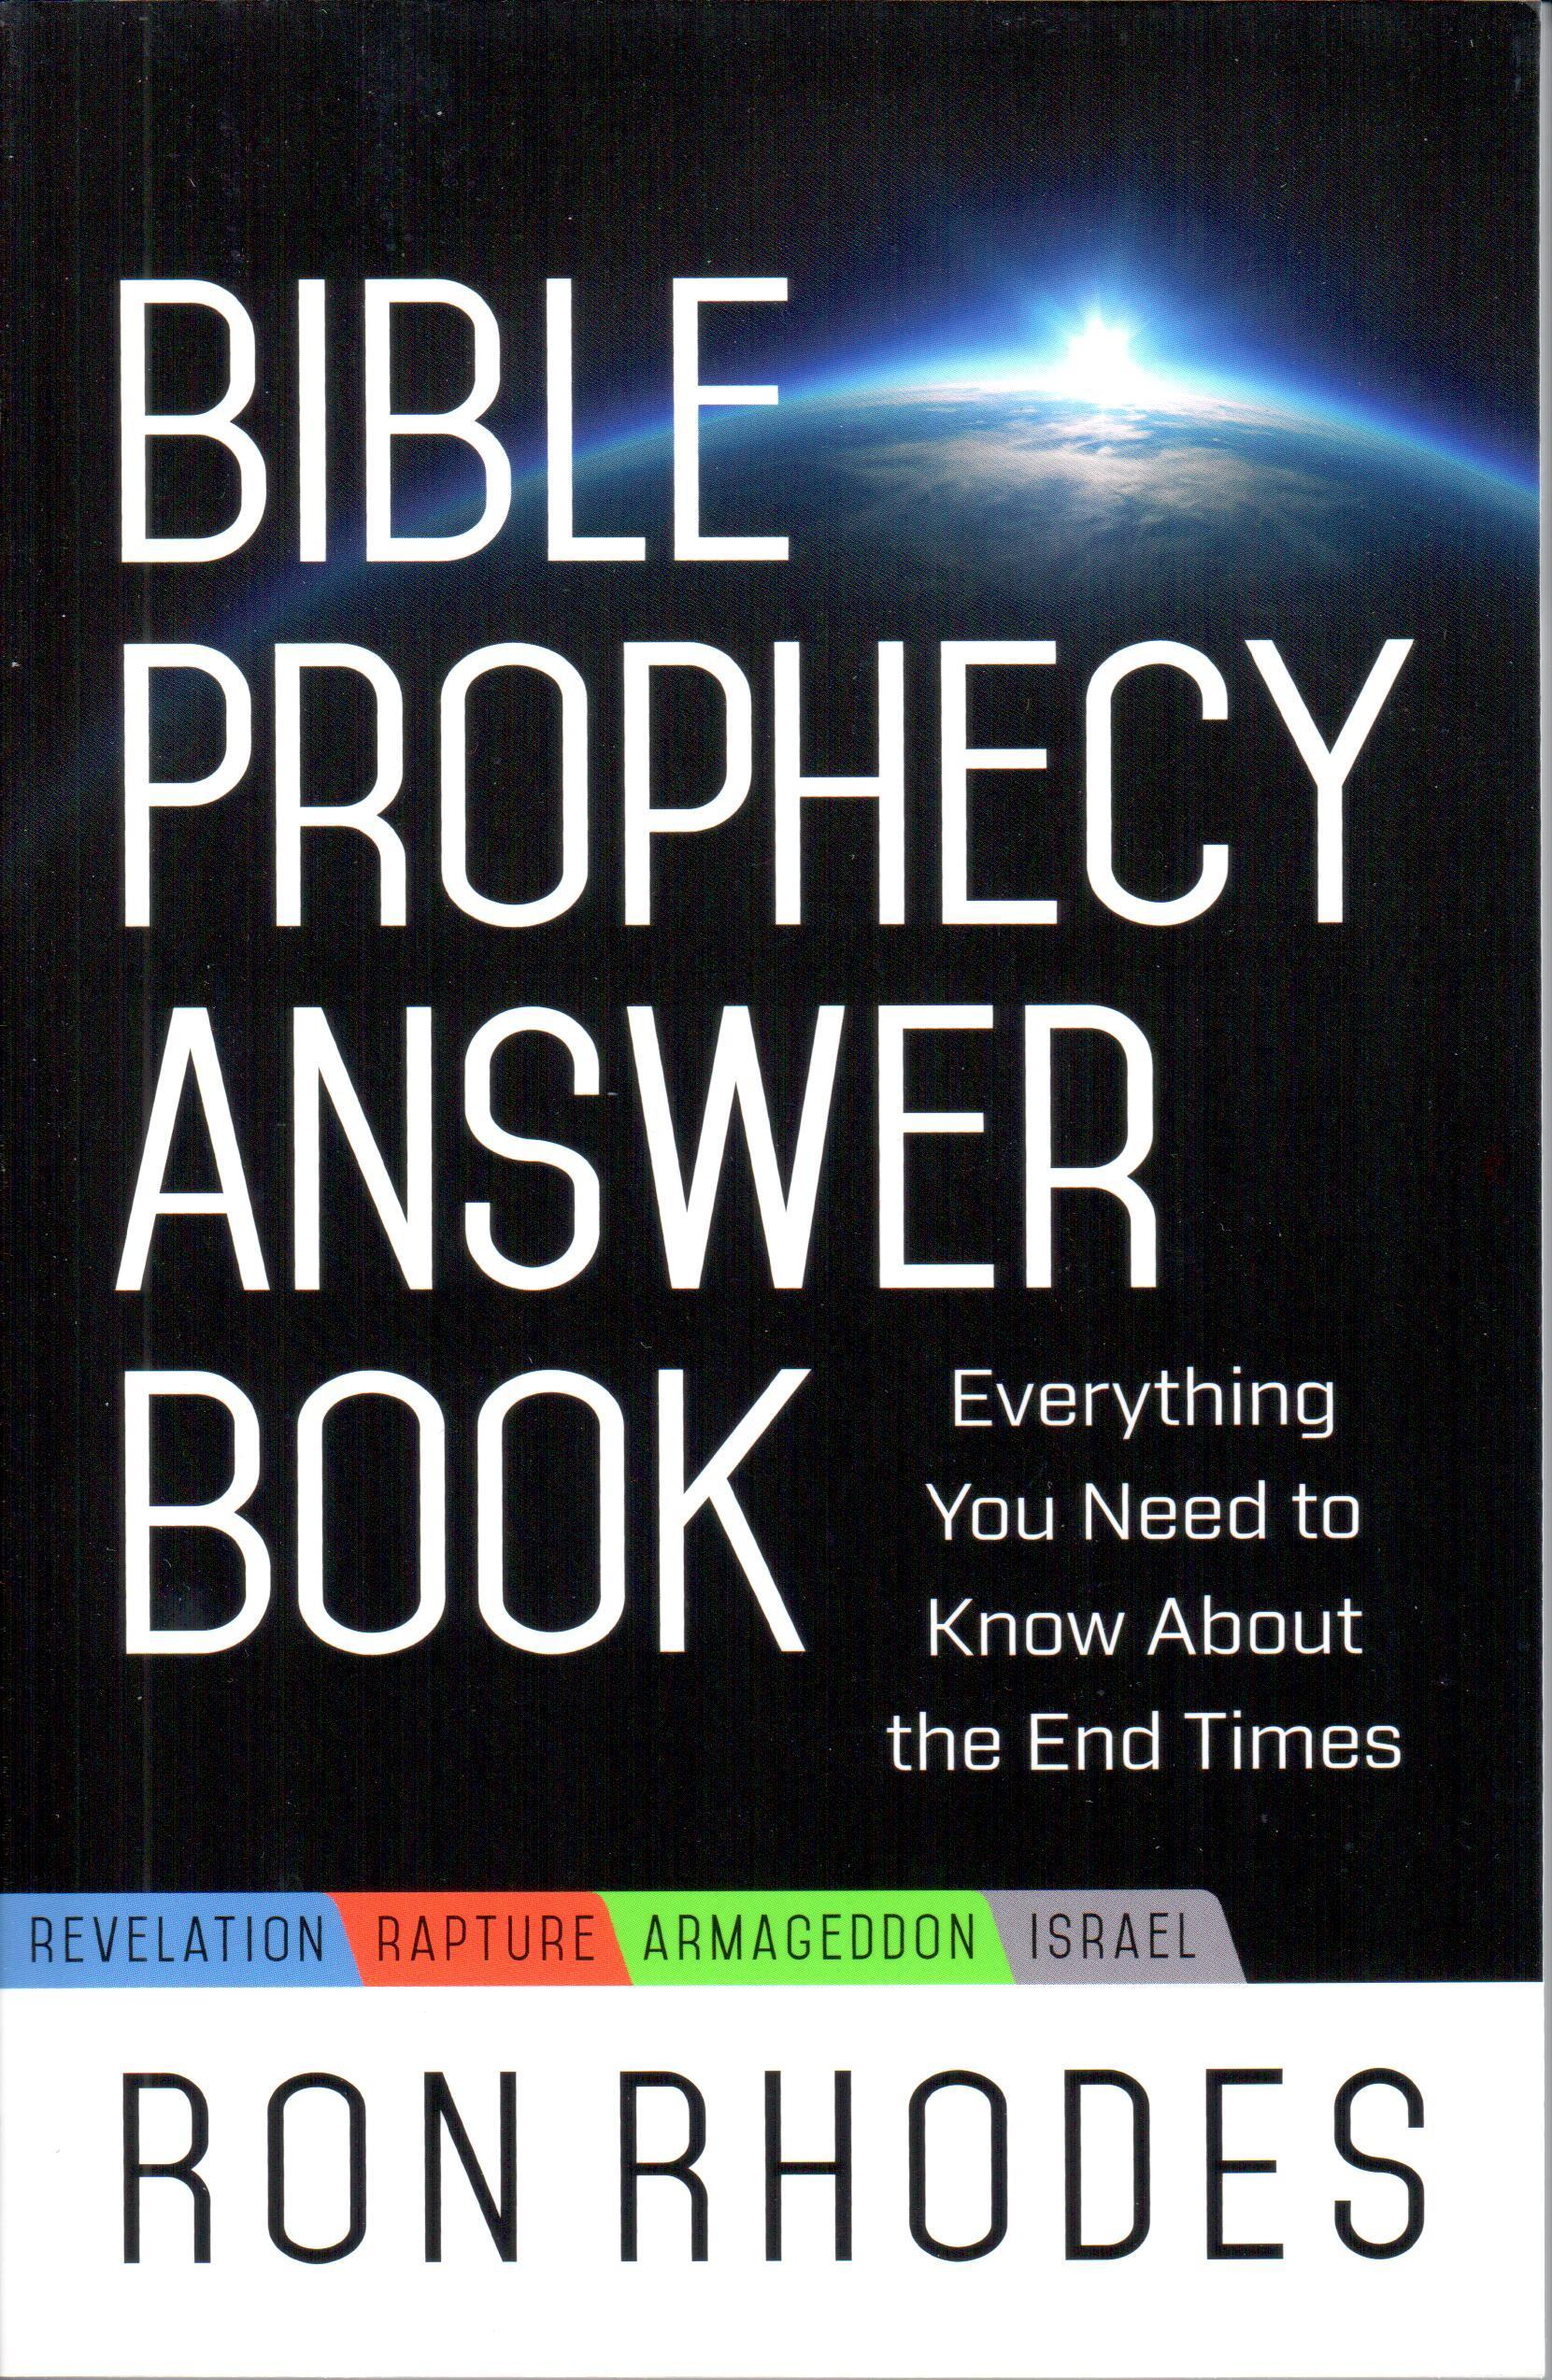 Bible Prophecy Answer Book - BOOK